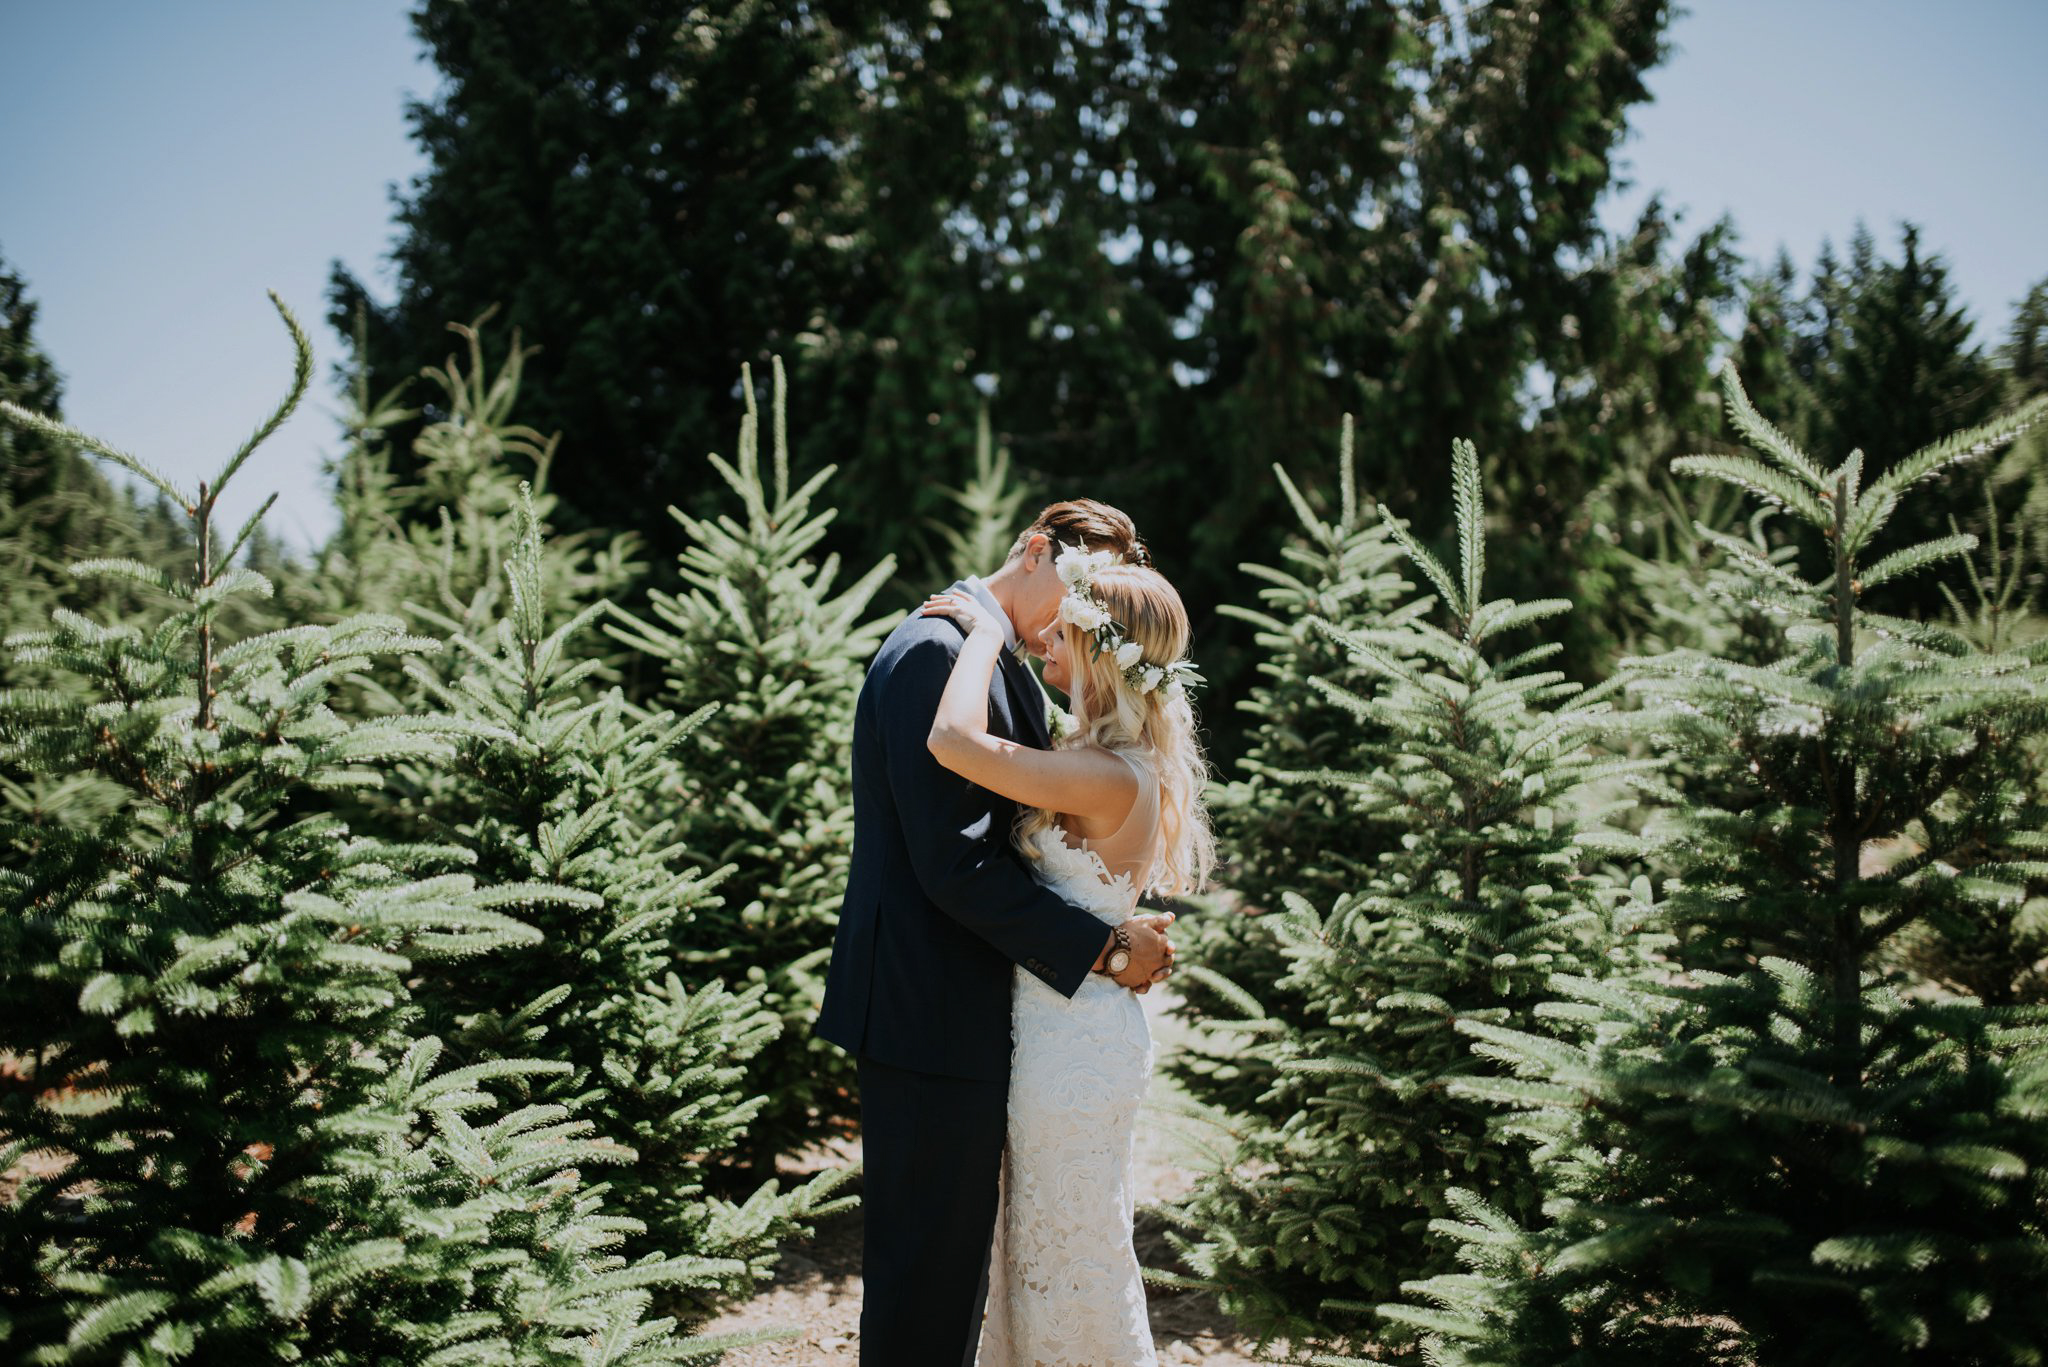 trinity-tree-farm-issaquah-washington-wedding-seattle-lifestyle-photographer-caitlyn-nikula-photography-35.jpg